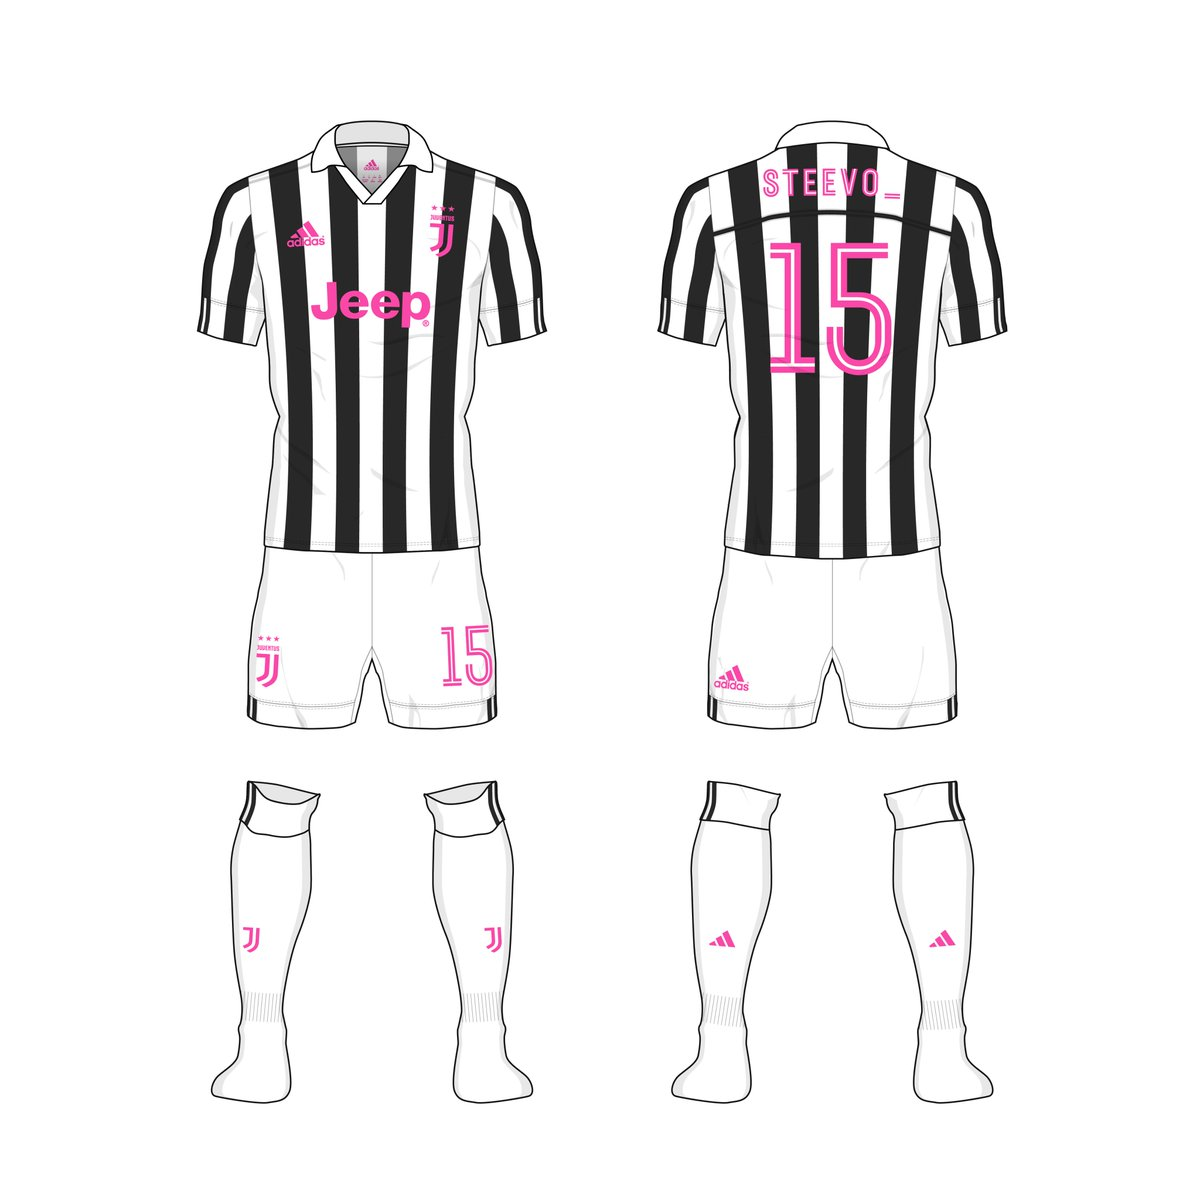 55ce4bdf Here's the finished #Juve kit. Let me know what you think. #kitnerd  #kitdesignpic.twitter.com/EnXyYvFV3p